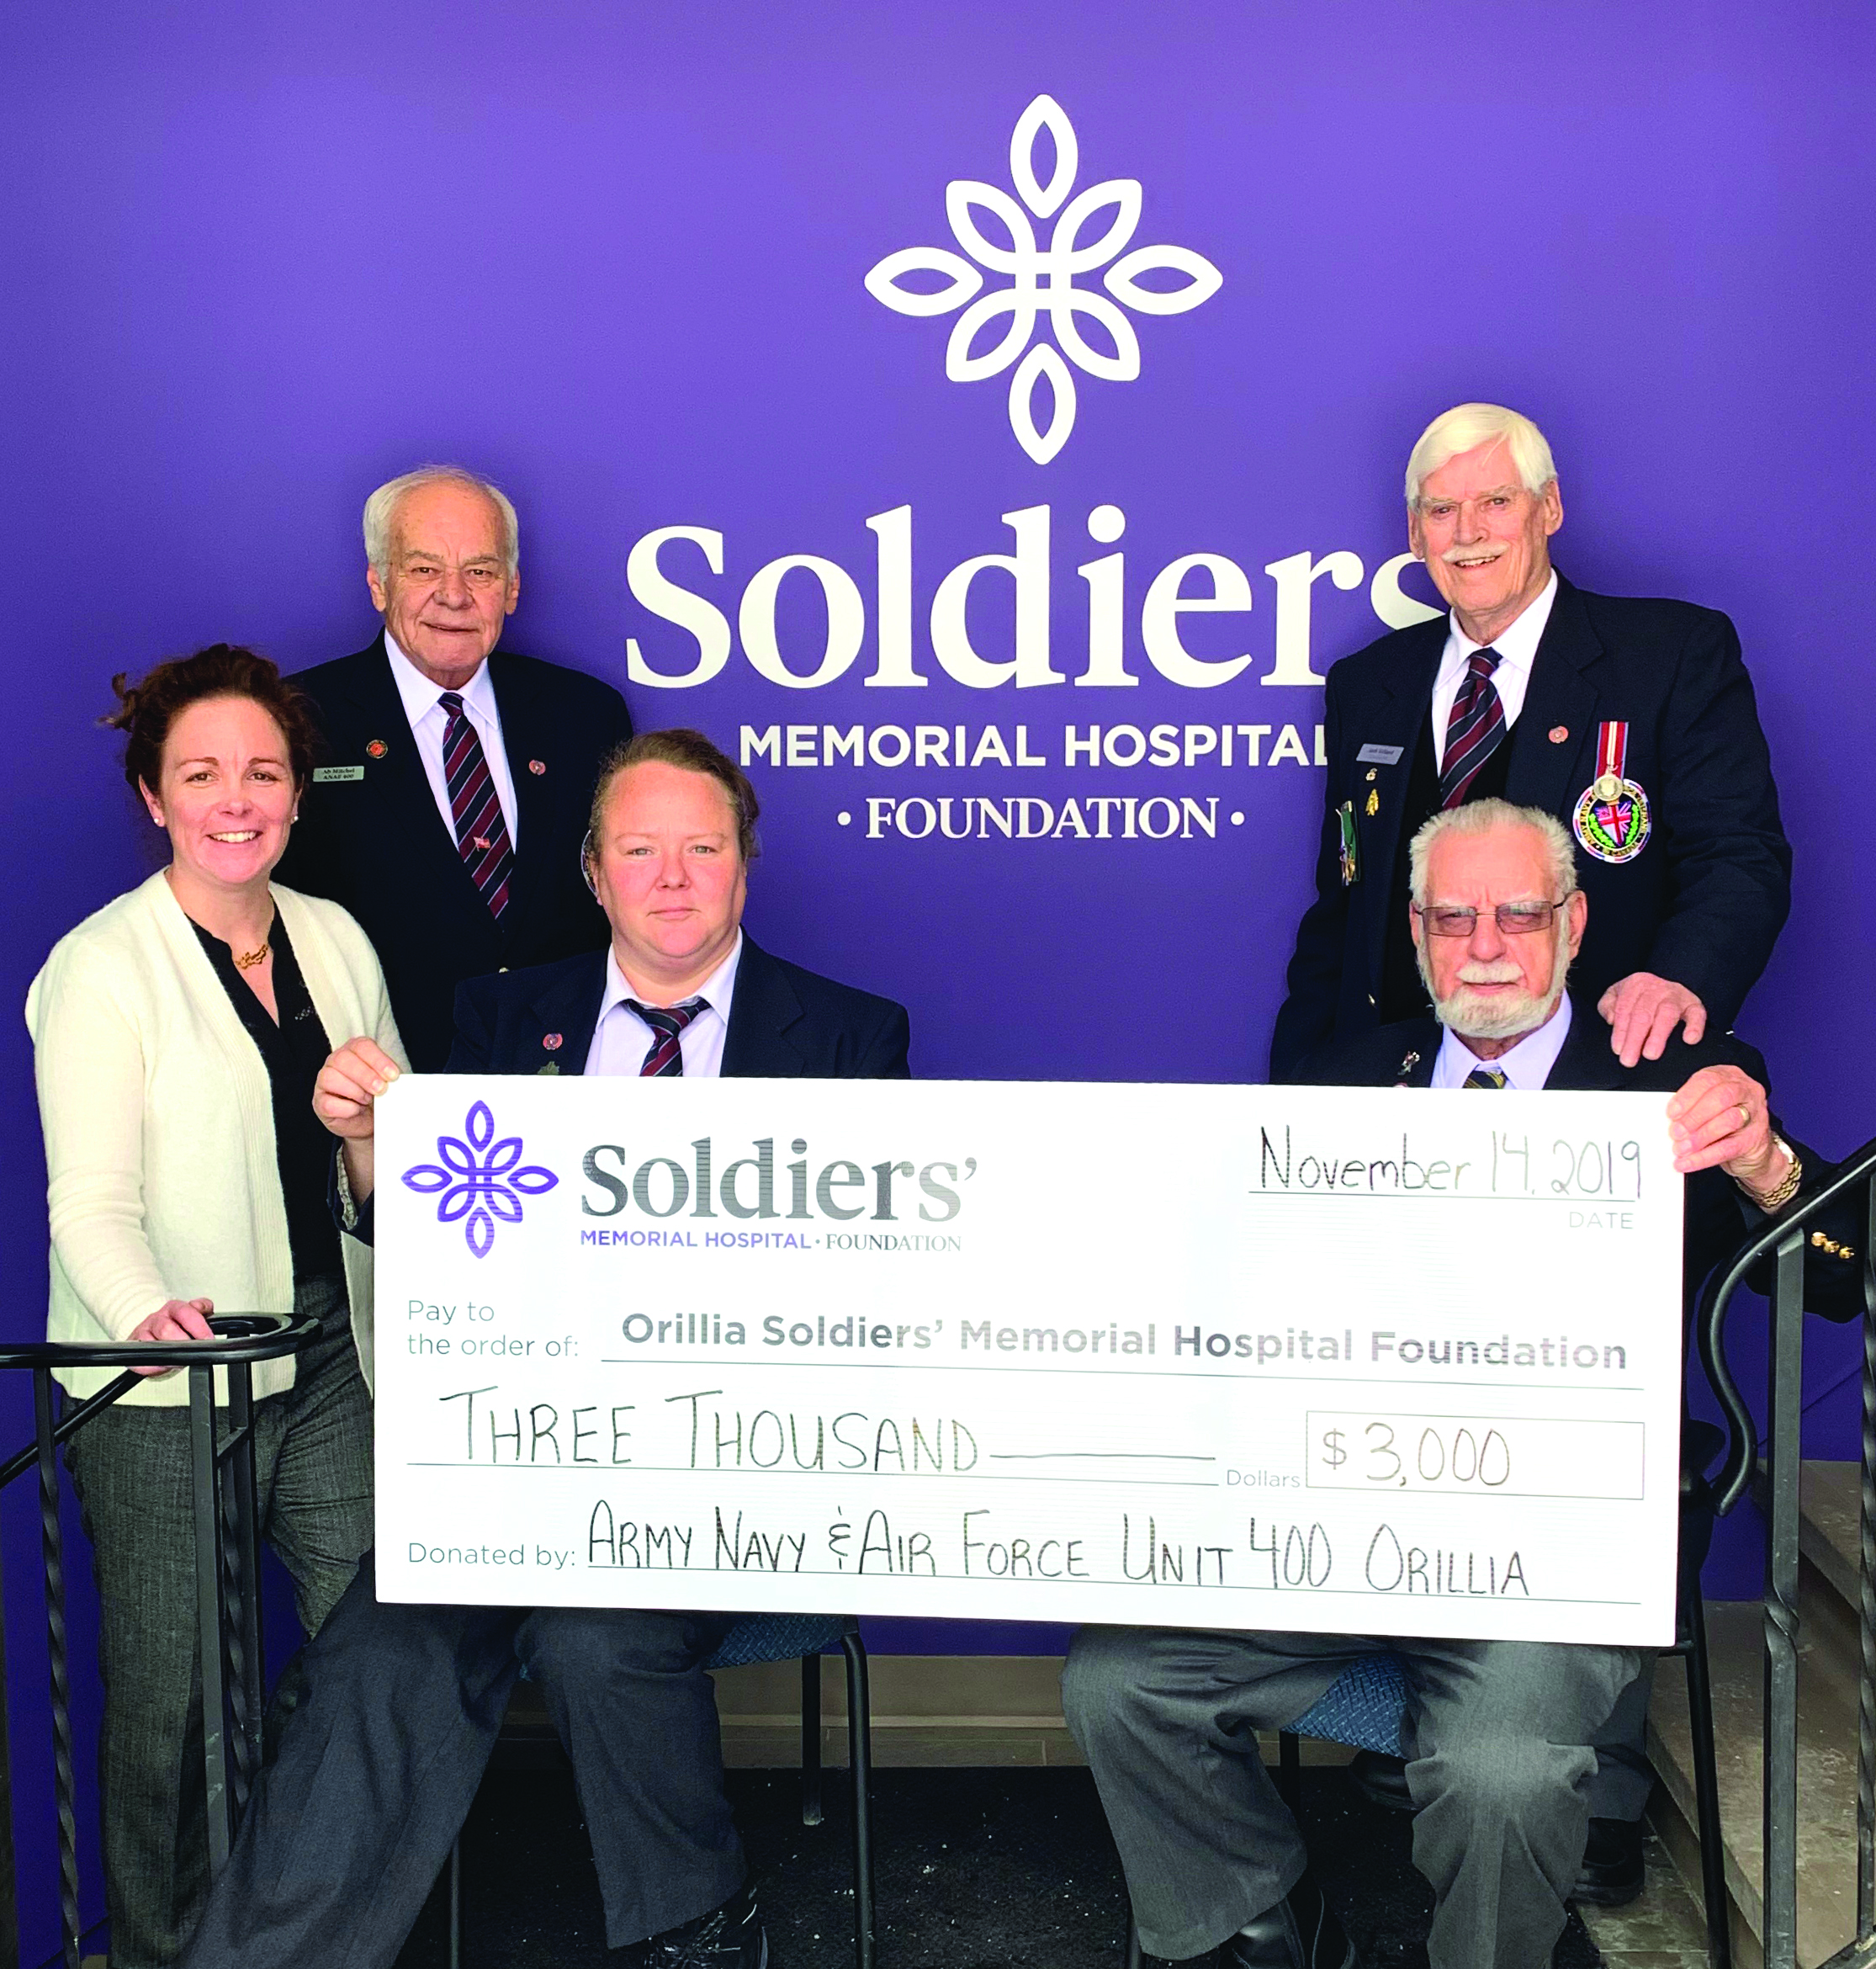 Representatives from the Army Navy & Air Force Veterans – Unit 400 deliver a donation of $3,000 to Orillia Soldiers' Memorial Hospital Foundation. From left to right: Kristen Dawson, Soldiers' Manager of Patient Experience, Ab Mitchell, Veterans Visiting Member, Colleen Payie, Army Navy & Air Force Veterans – Unit 400 Vice President, Jack Gillard, Army Navy & Air Force Veterans – Unit 400 President (back), Bob Dimalane, Legion Visiting Member.